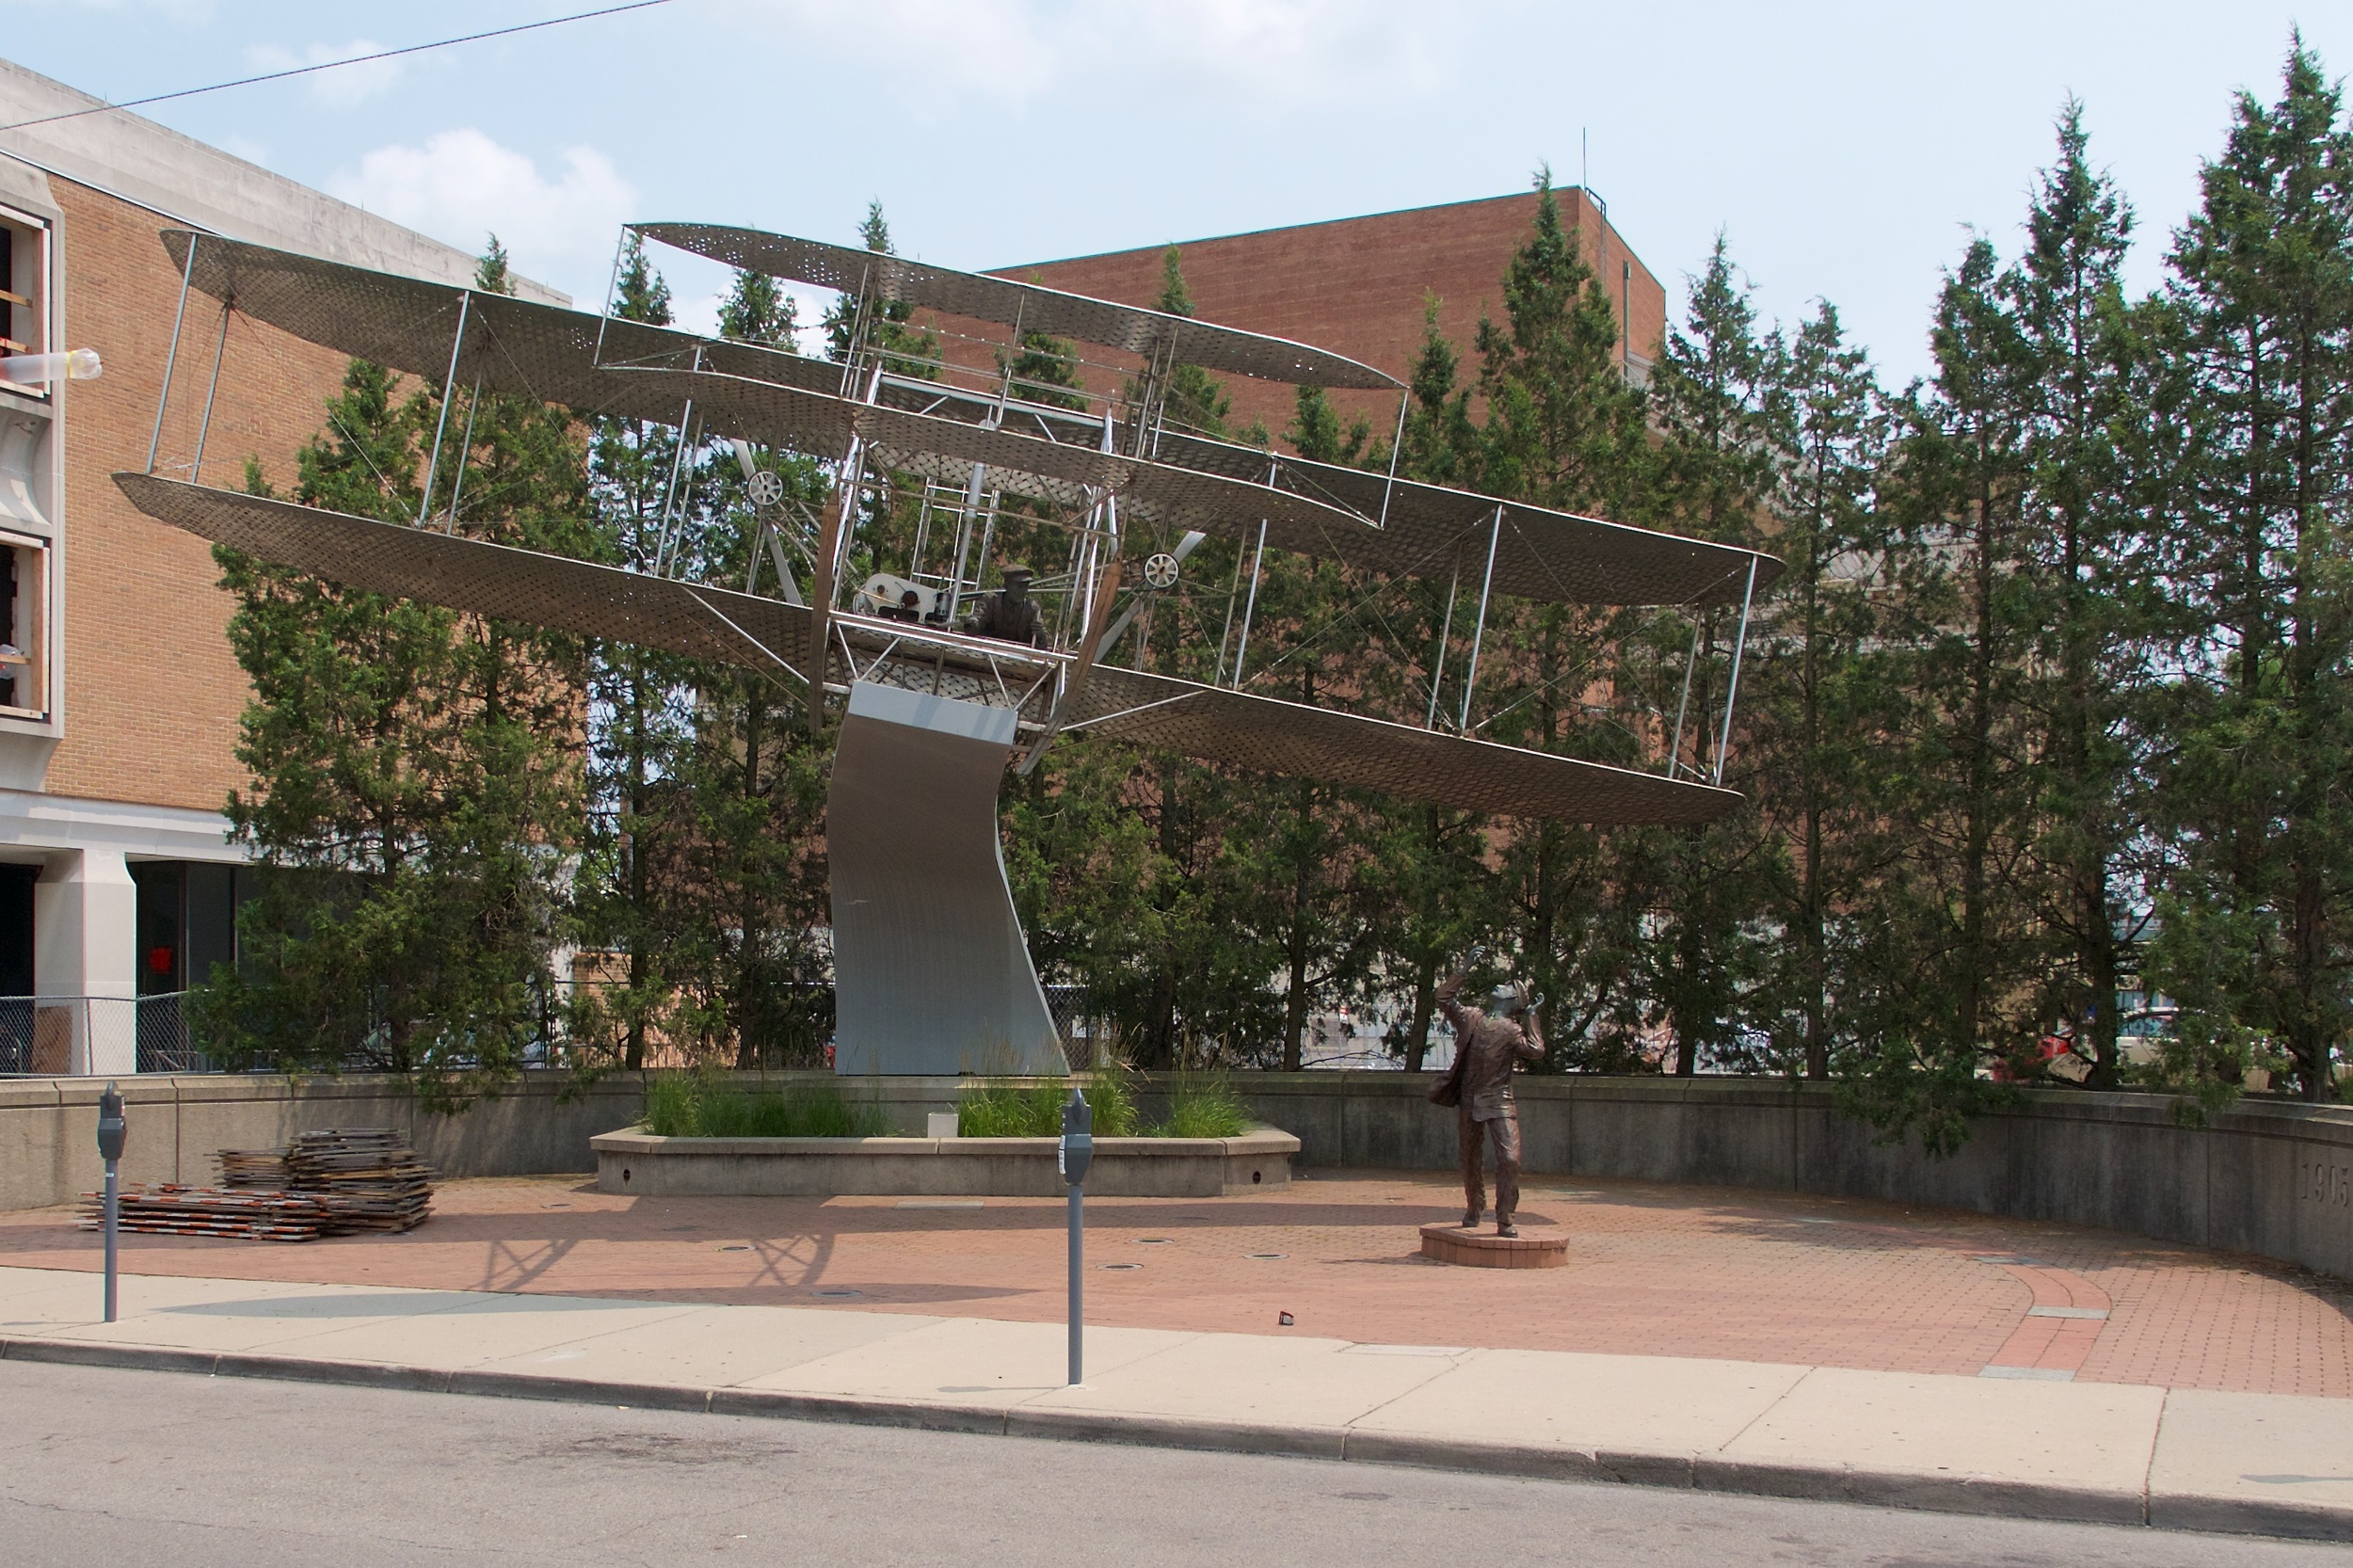 Wright flyer statue